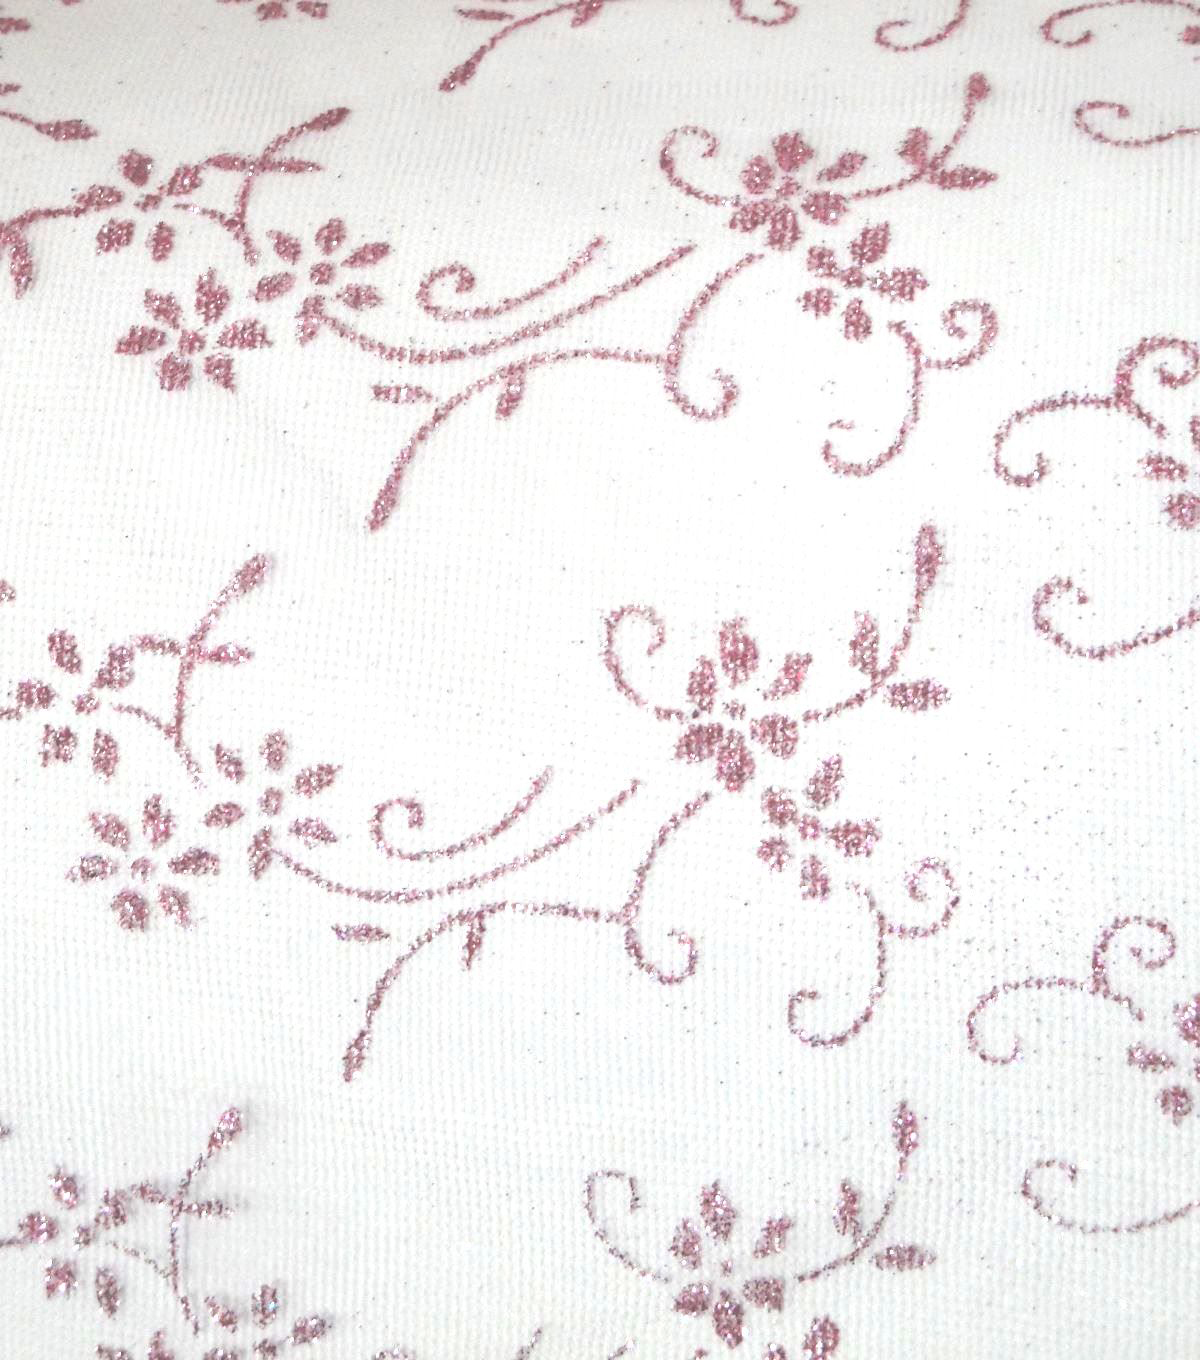 Glitterbug Princess Floral Sheer Glitter Fabric-Light Pink